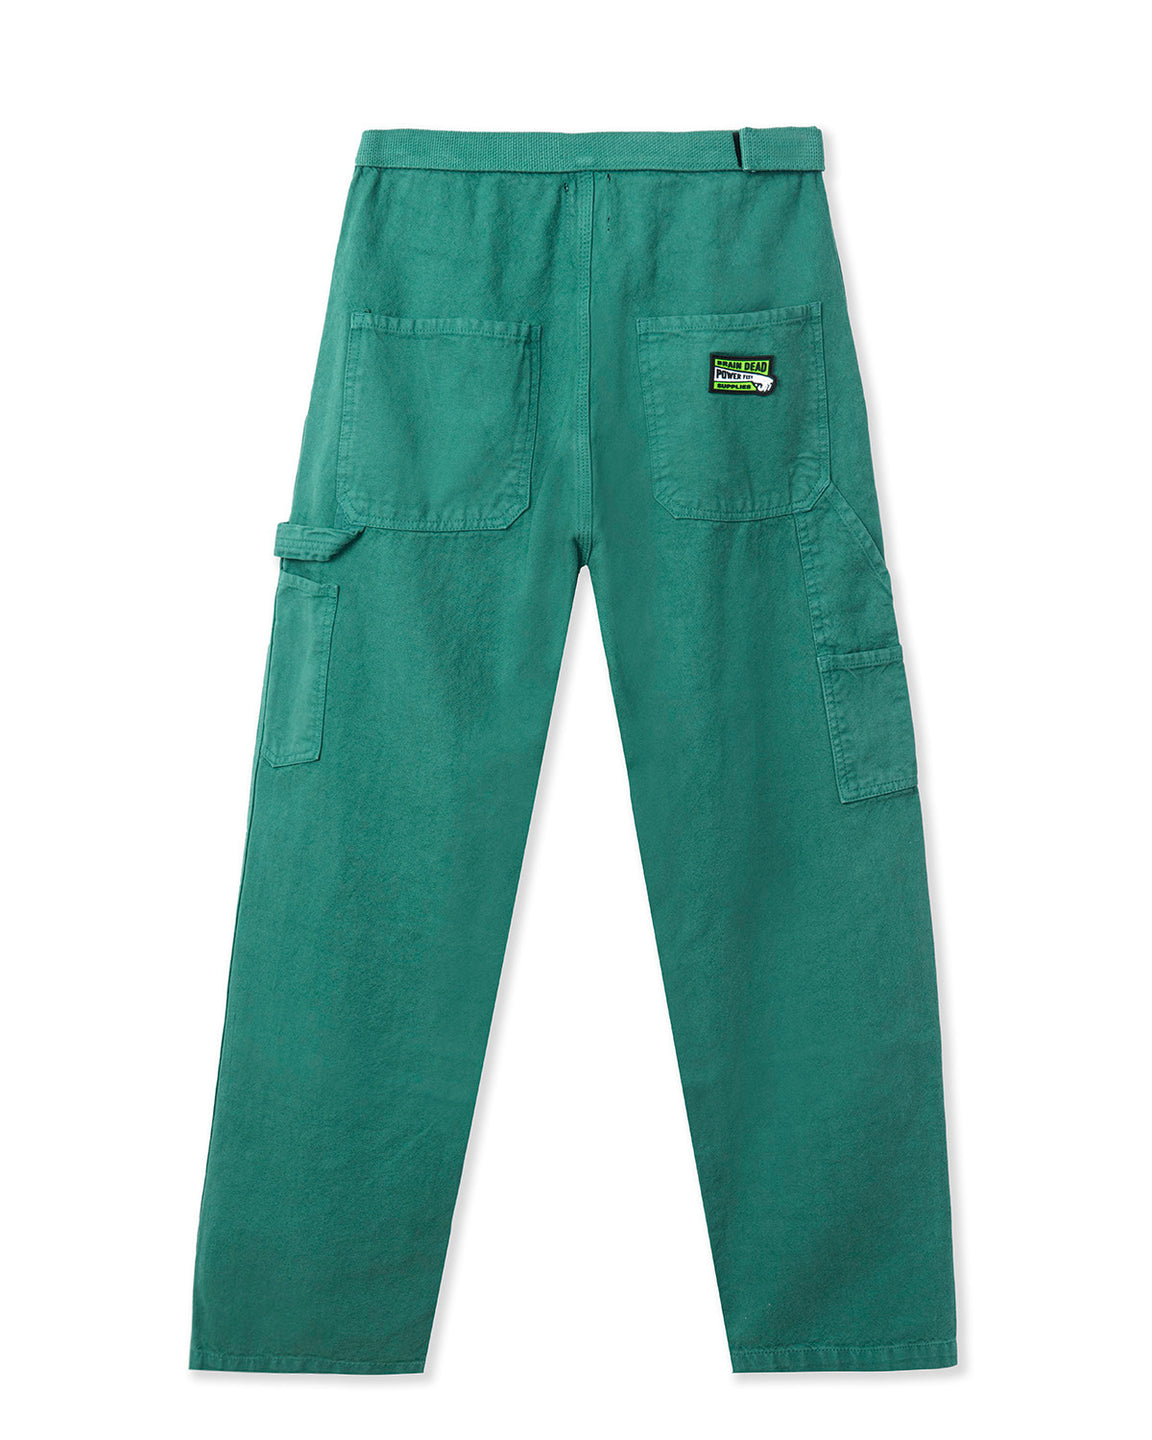 Washed Hard/Software Velcro Carpenter Pant - Teal